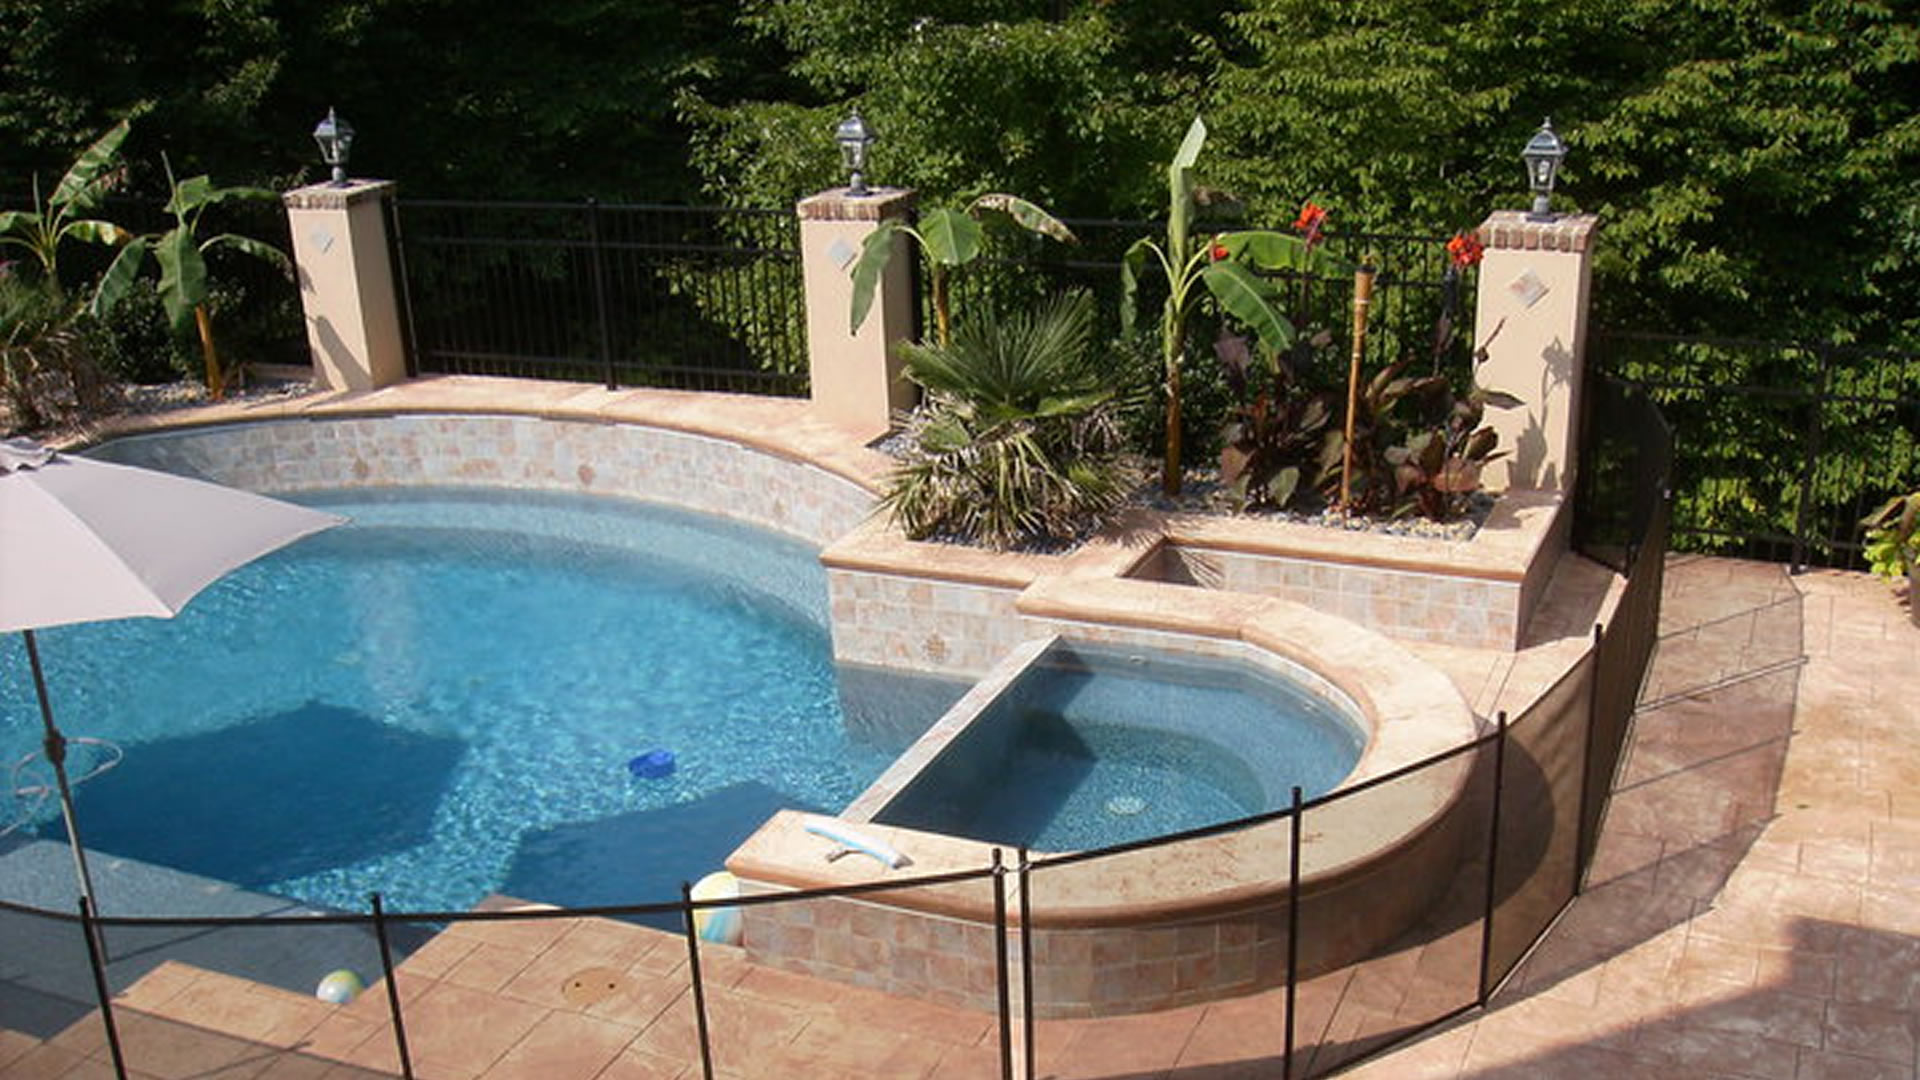 Pool Barrier Of Arizona Iron Fences Mesh Fences Pool Covers